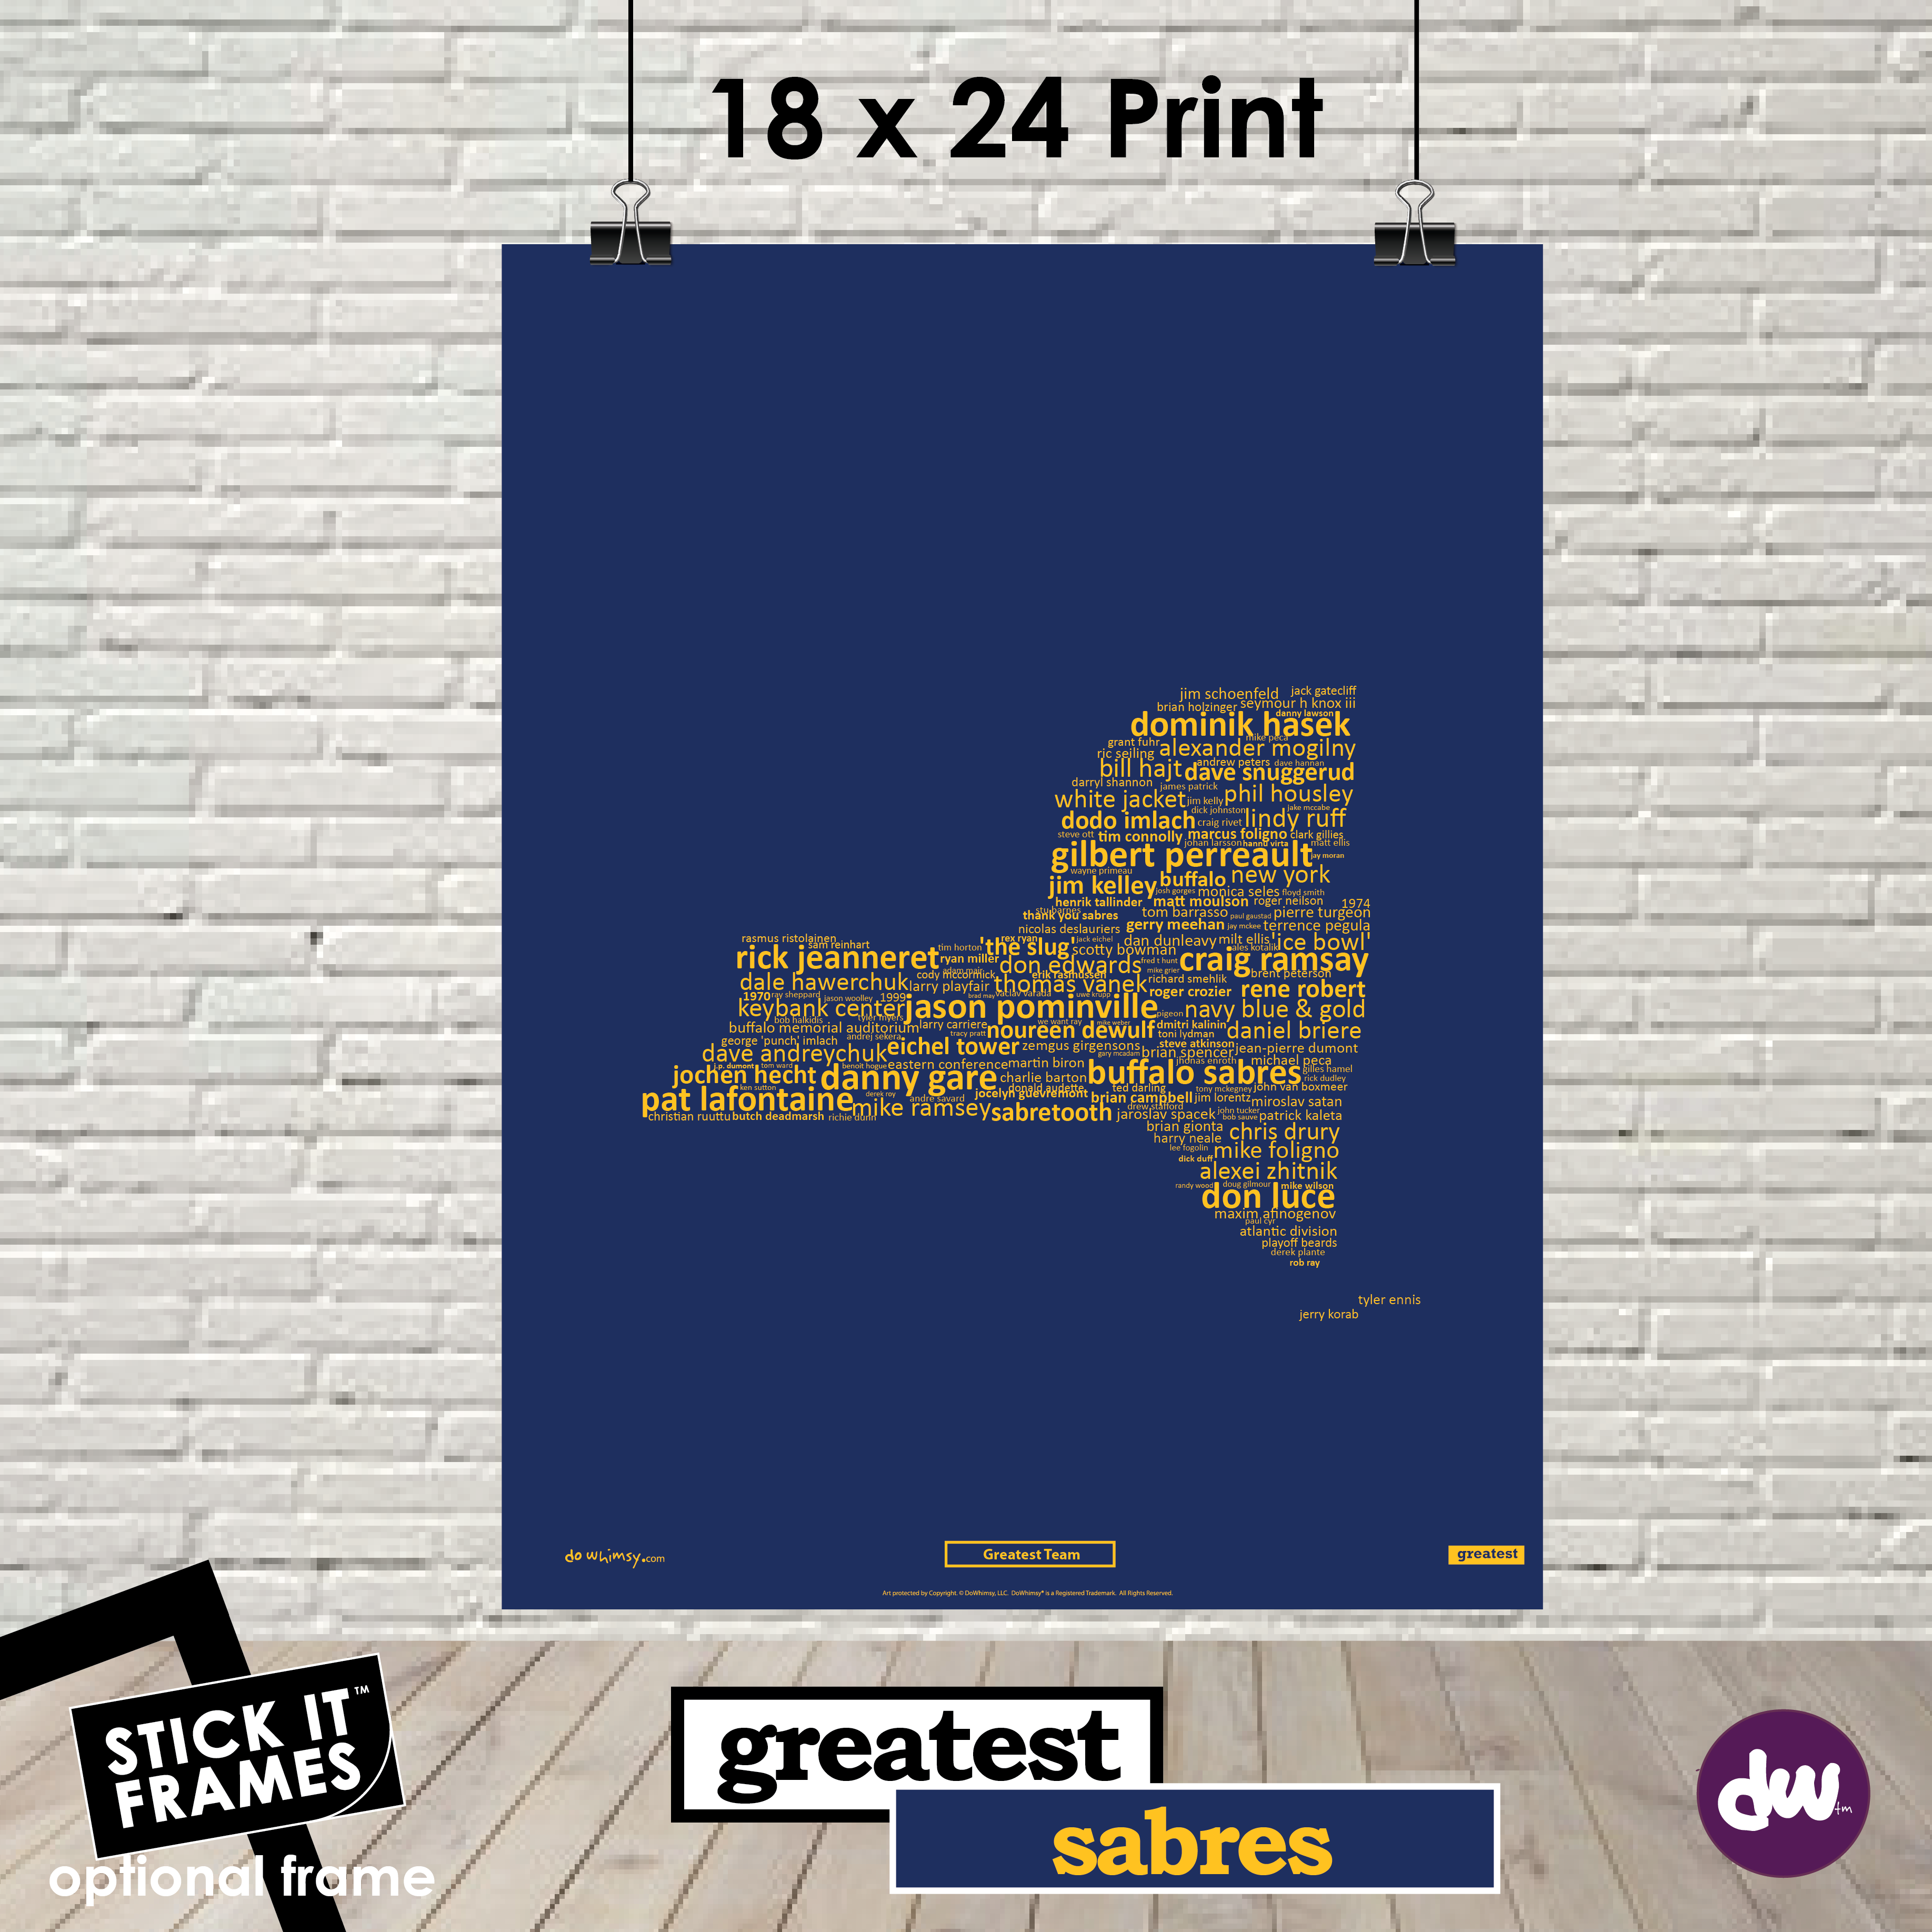 Greatest New York (Sabres) - All Products (Shirt, Art, Frames (R))